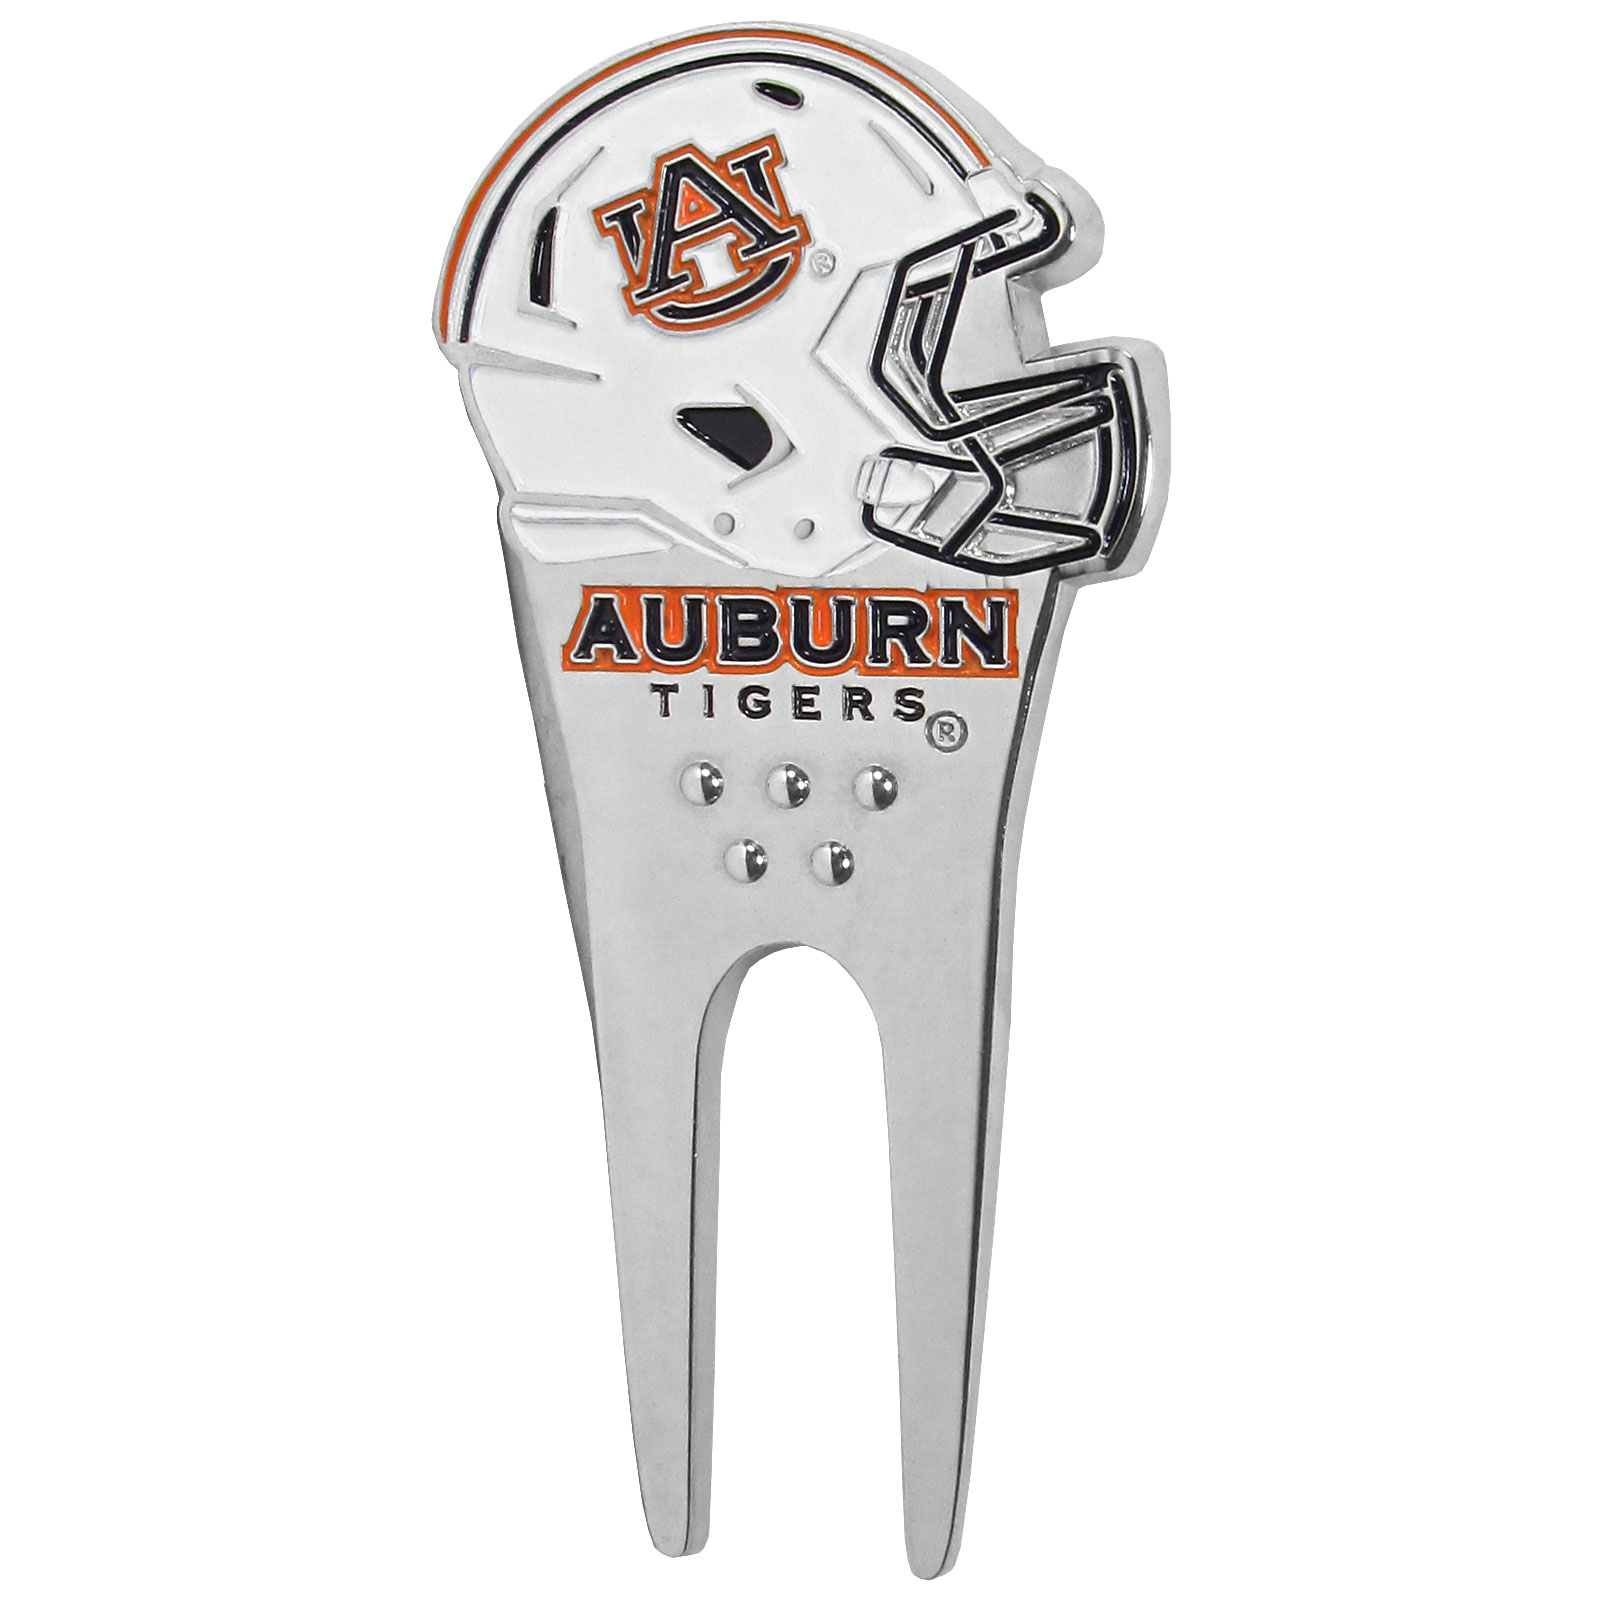 Auburn Tigers Divot Tool and Ball Marker - Keep the greens in good shape with our Auburn Tigers high quality divot tool and ball marker. The fully metal tool features a sculpted team helmet at the top of the divot tool and a logo ball marker that is held in place by a powerful magnet. Never hit the greens without it.